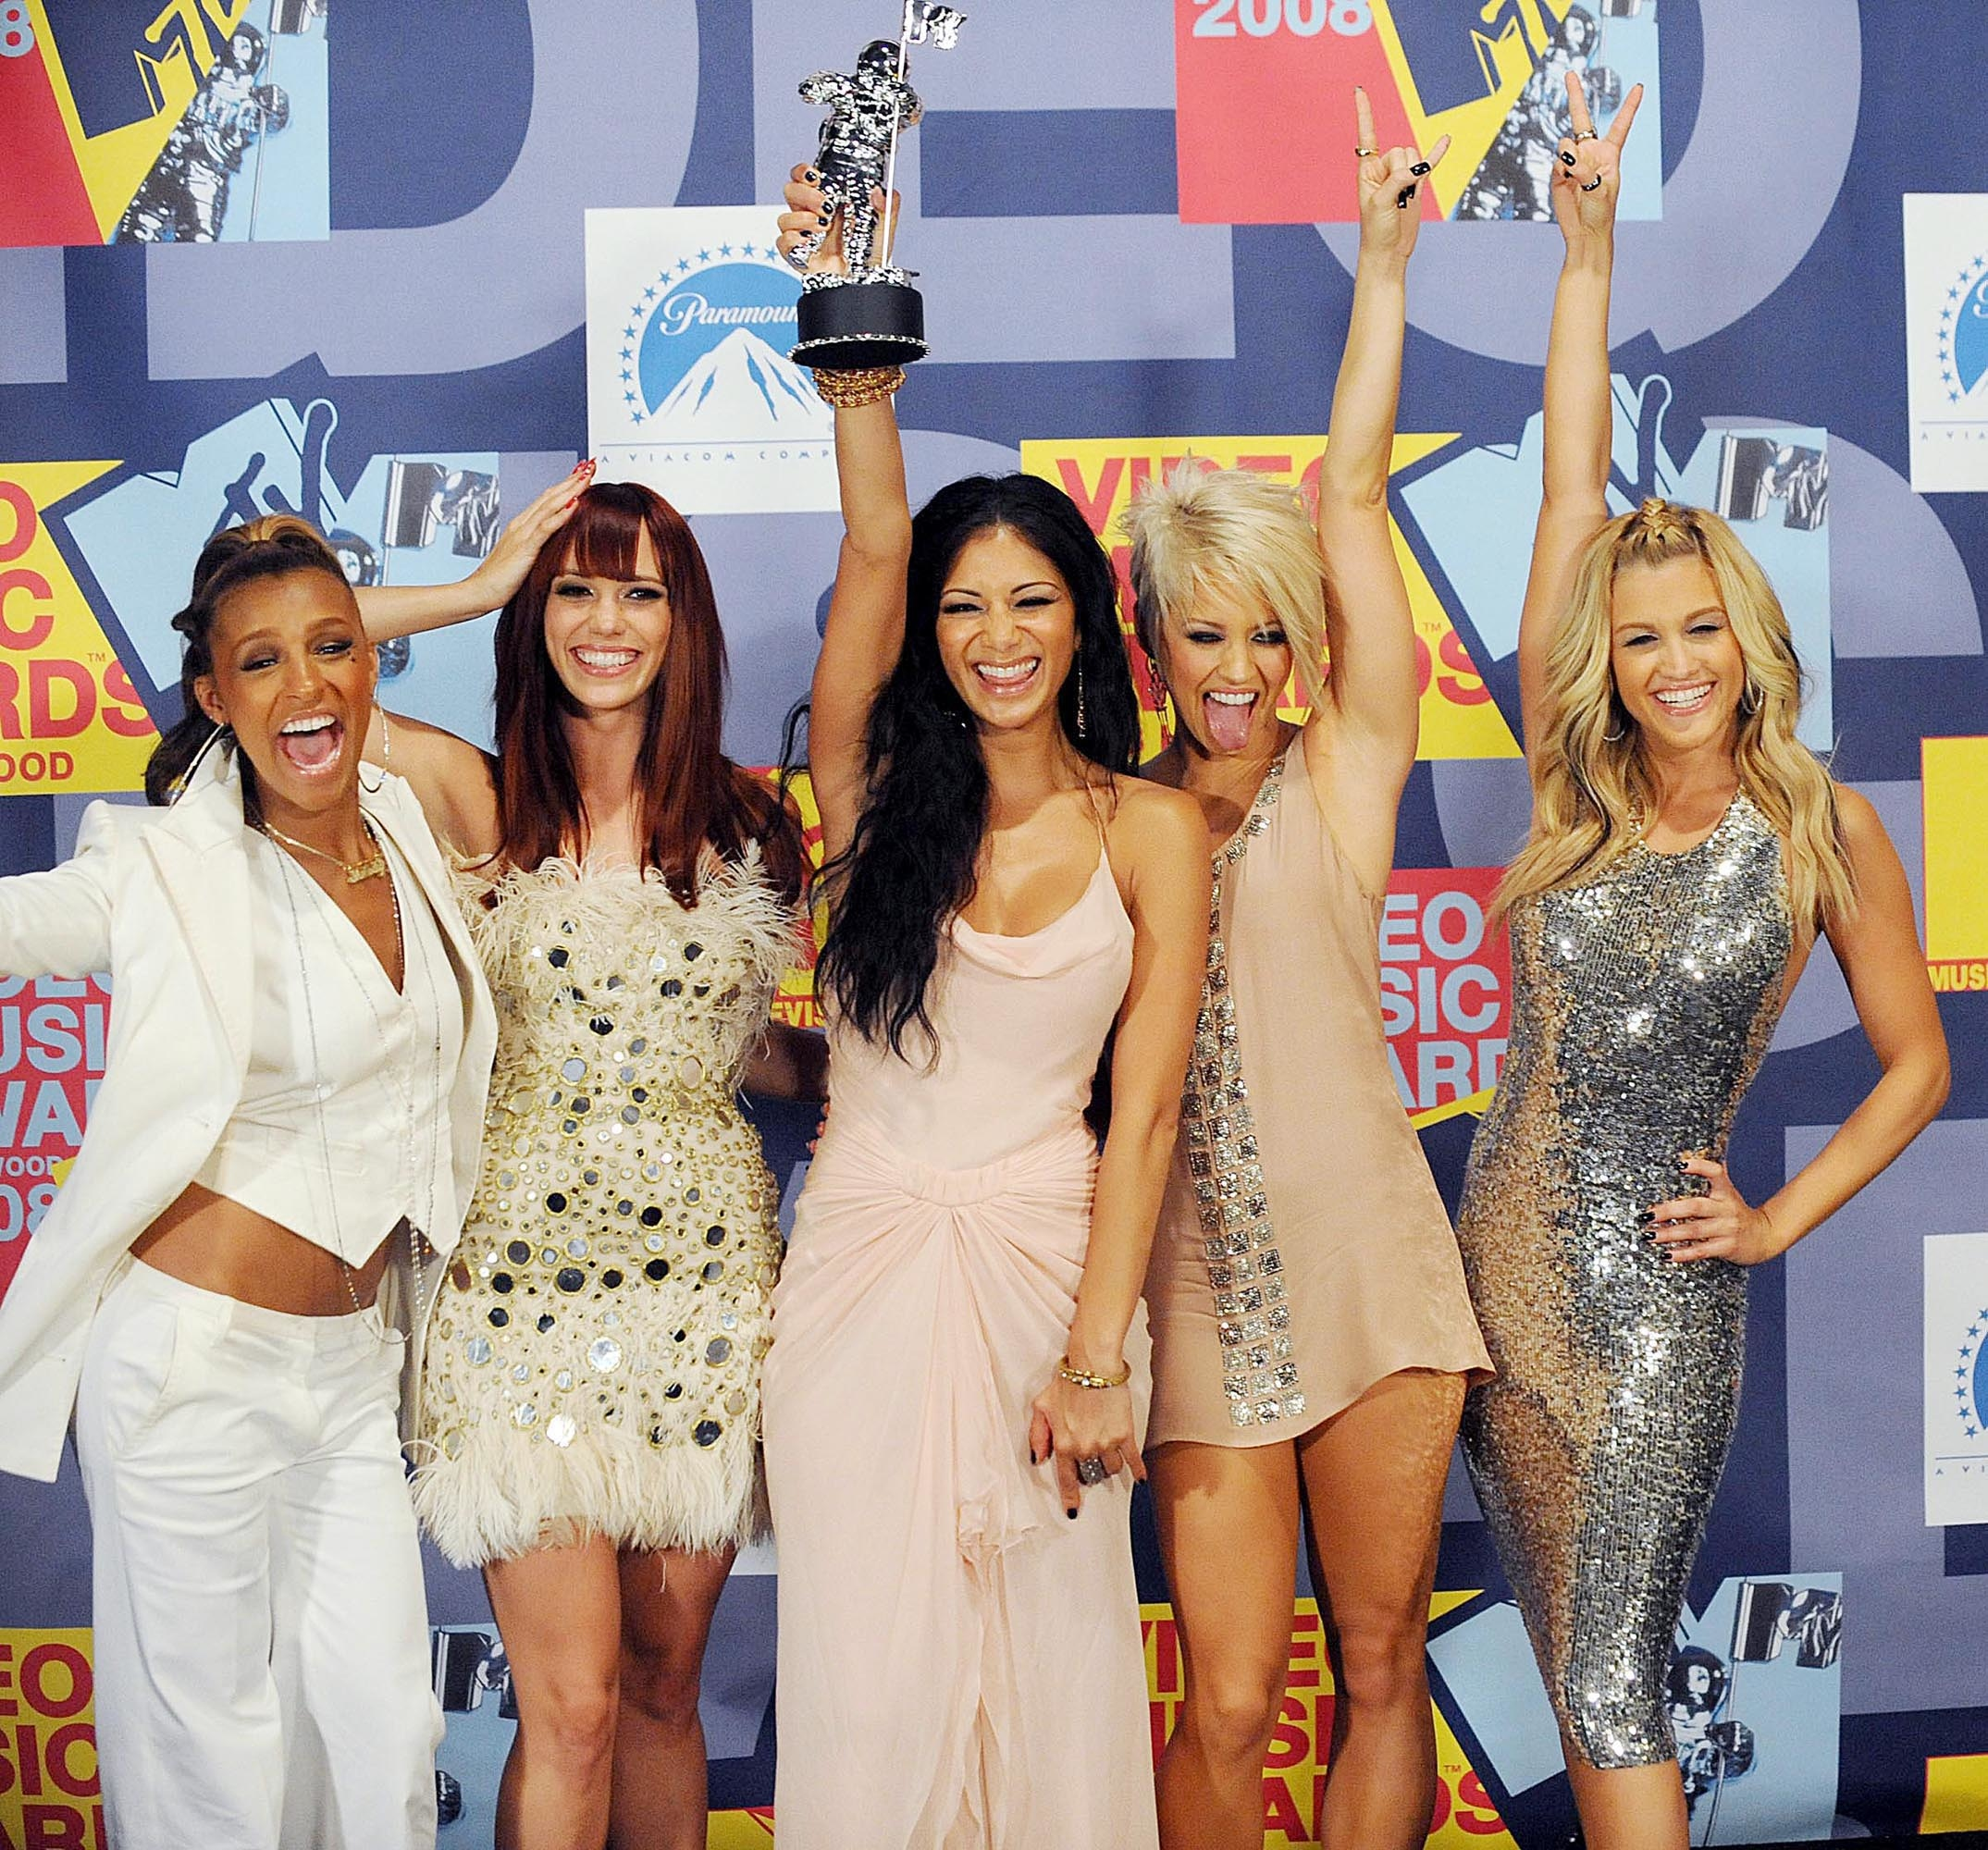 CELEBS ARRIVE FOR THE 2008 MTV MUSIC VIDEO AWARDS.